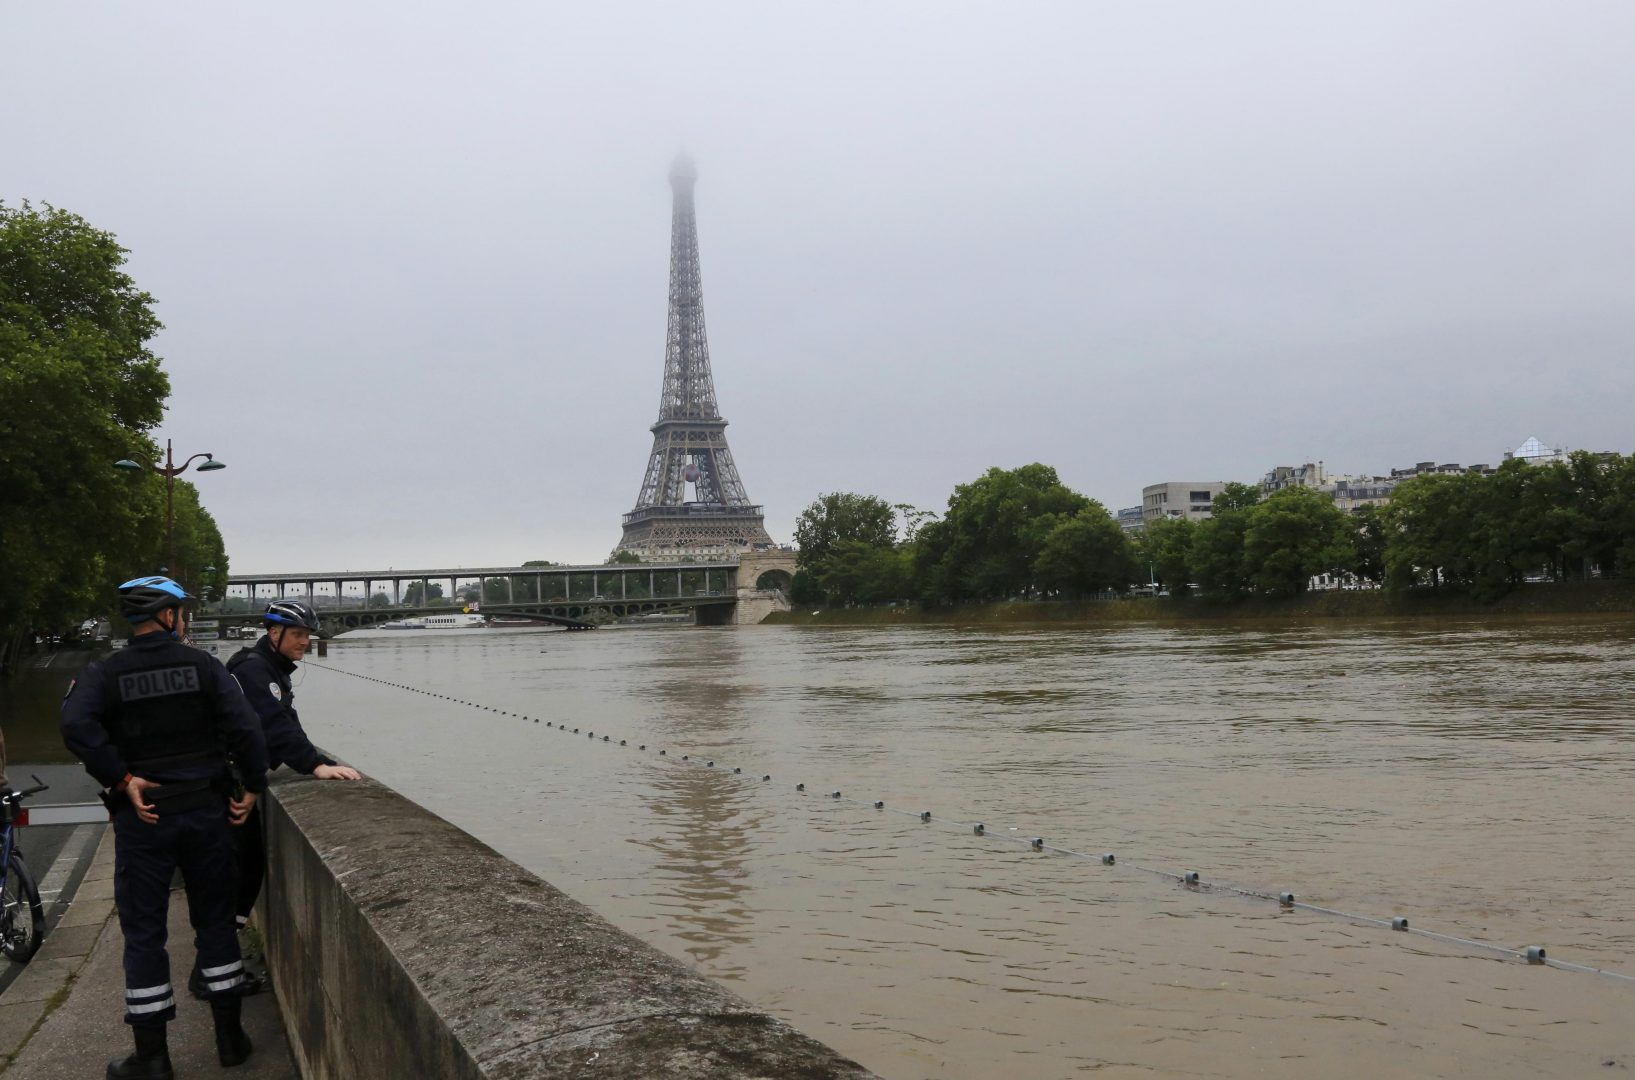 French police stop to look at flooding on the banks of the Seine River near the Eiffel Tower after days of heavy rainfall in Paris, France, June 2, 2016. REUTERS/Jacky Naegelen